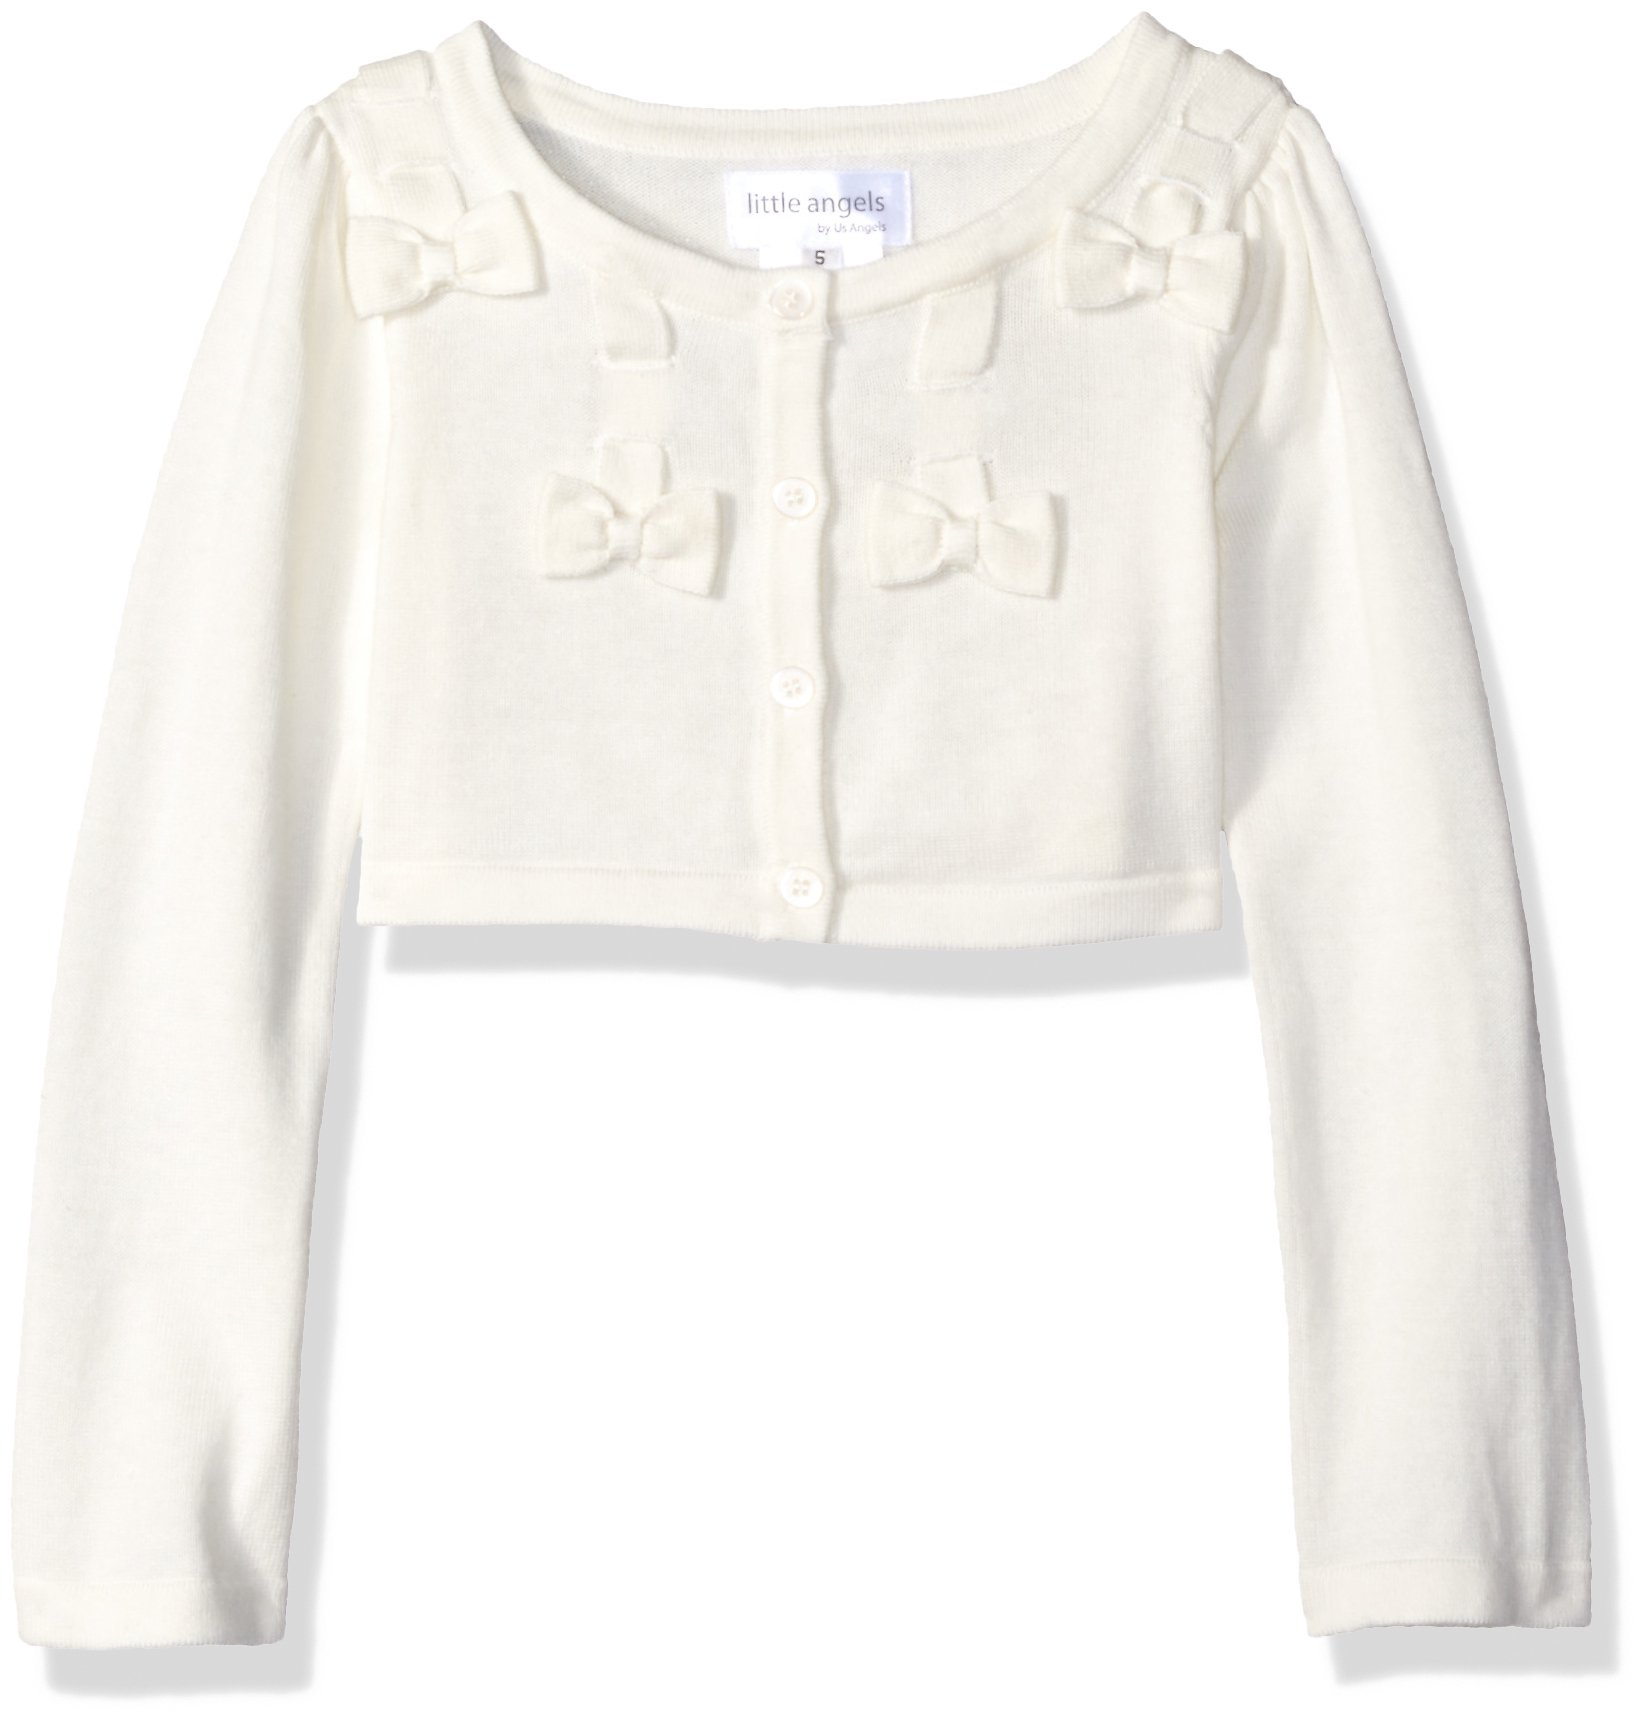 Little Angels Little Girls' Bow Withscalloped Edge Cardigan, Ivory, 6